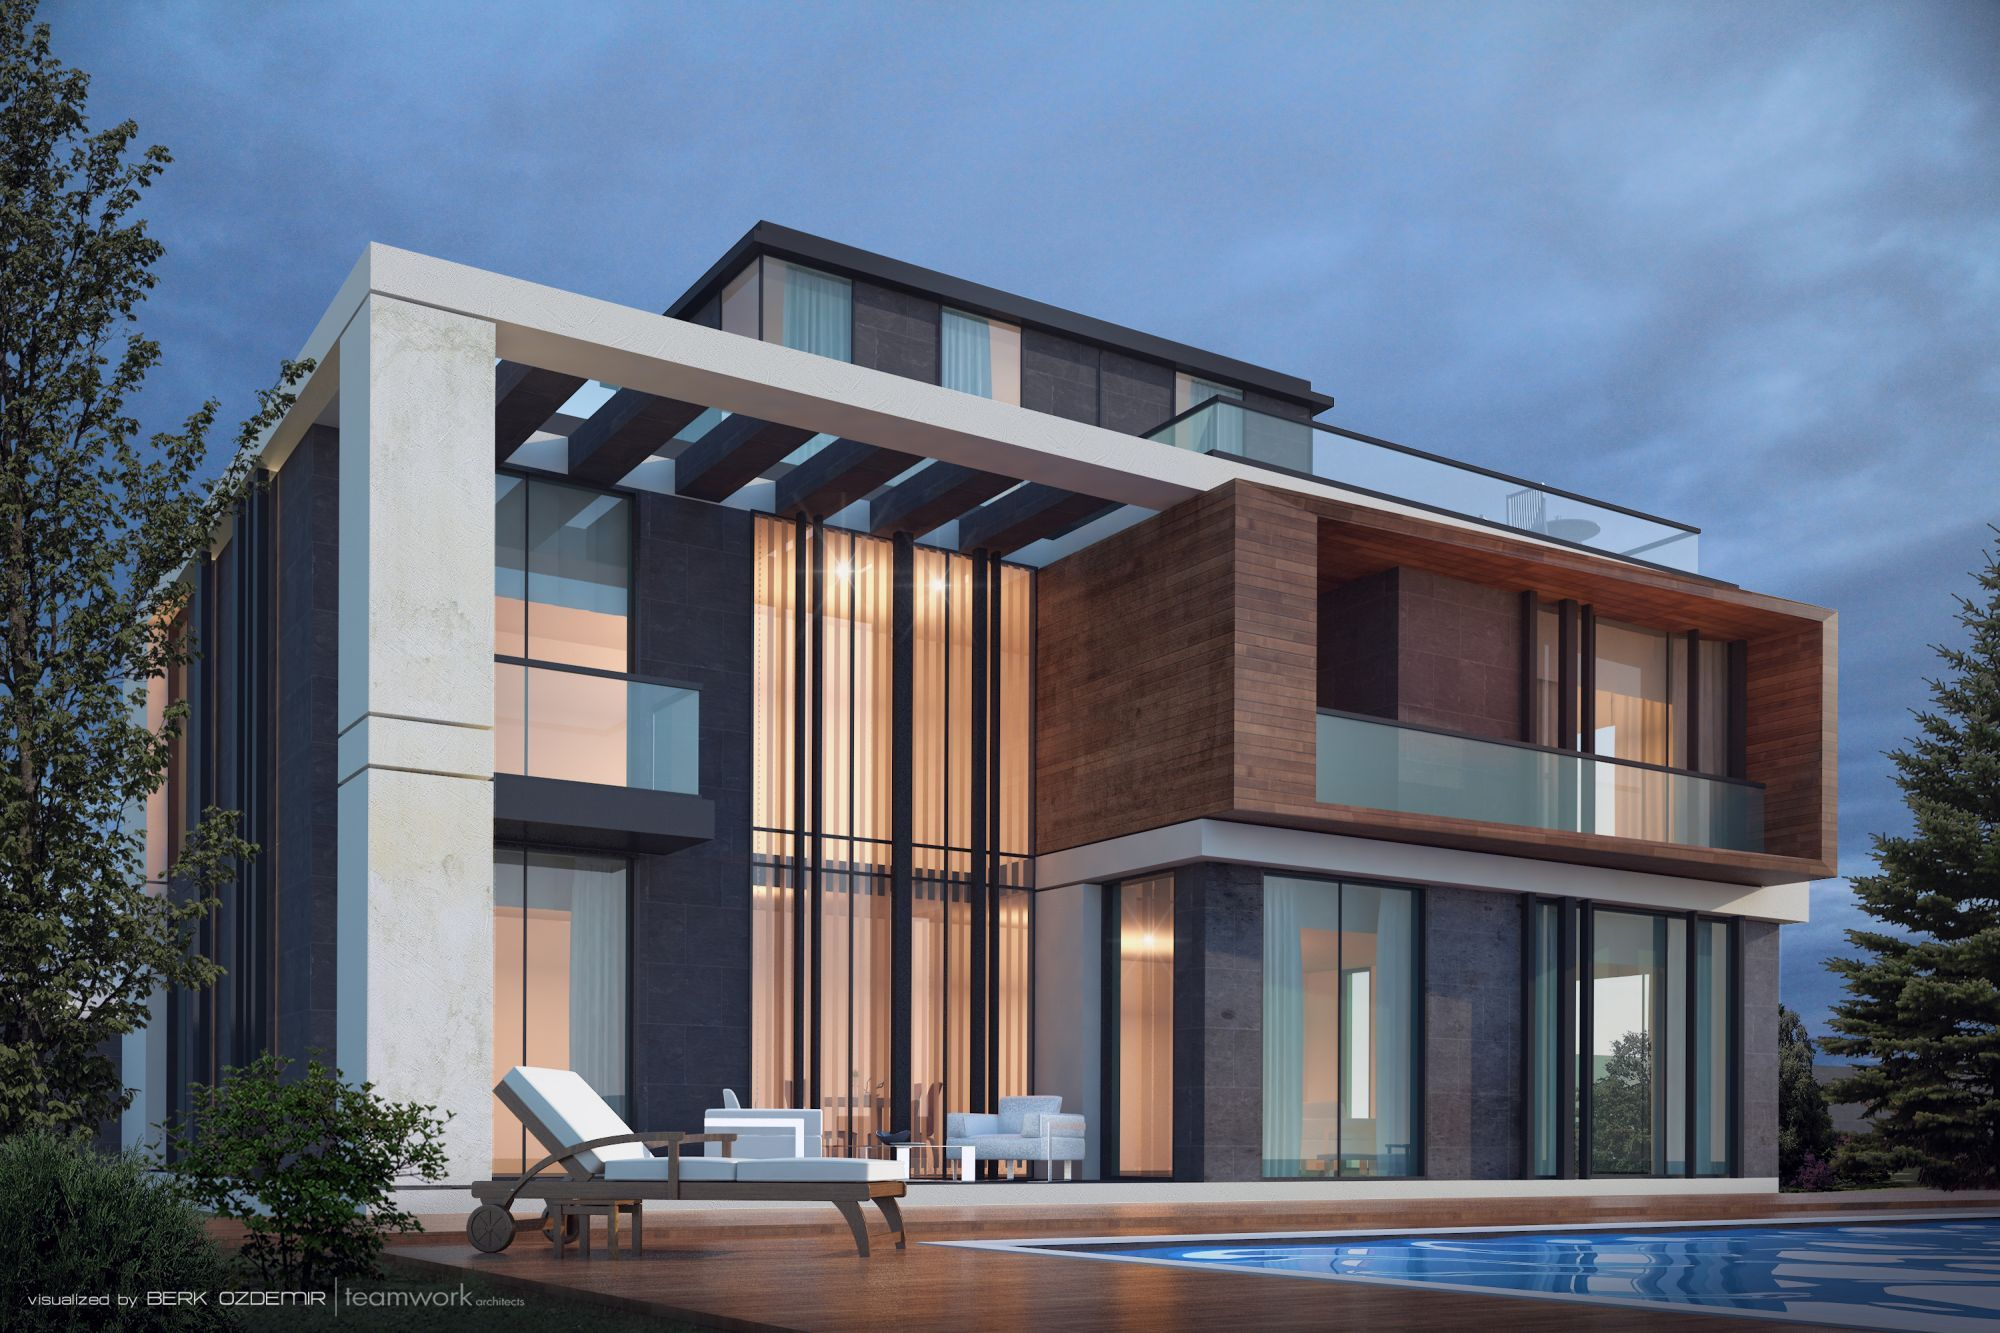 Modern villa design ecuador house ideas rear view for Modern luxury villa design